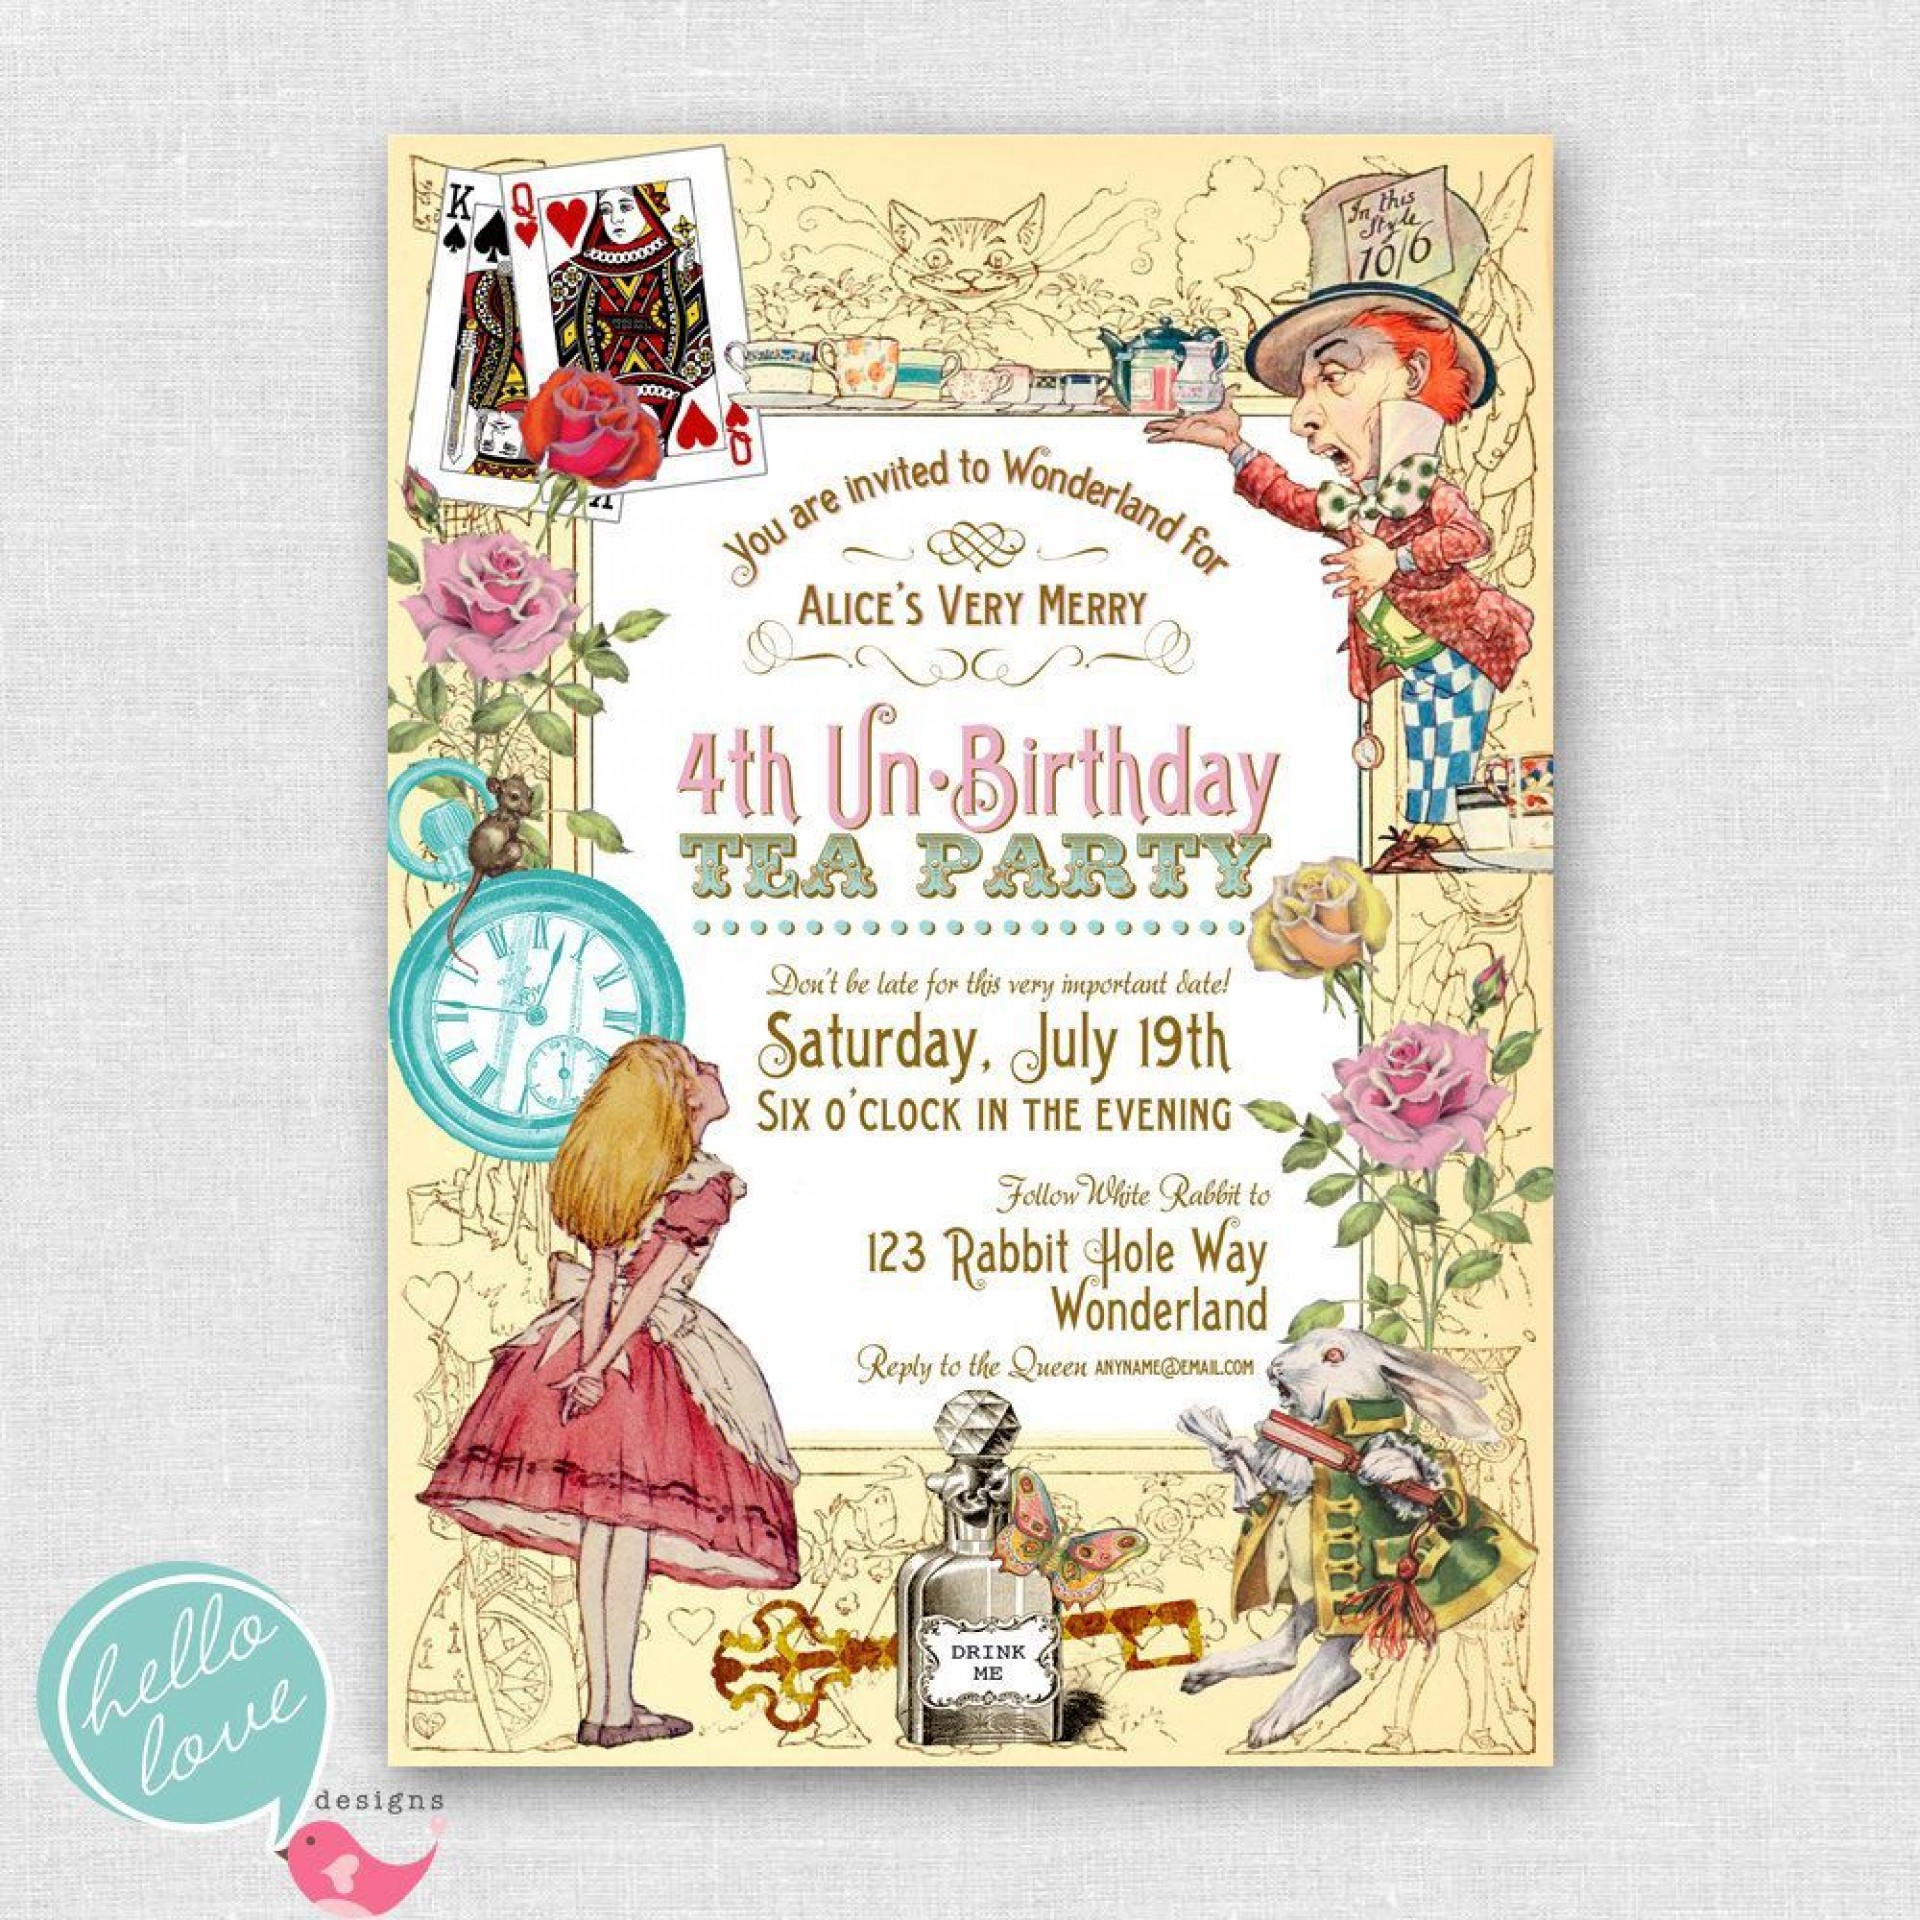 004 Staggering Alice In Wonderland Tea Party Template Example  Templates Invitation Free1920